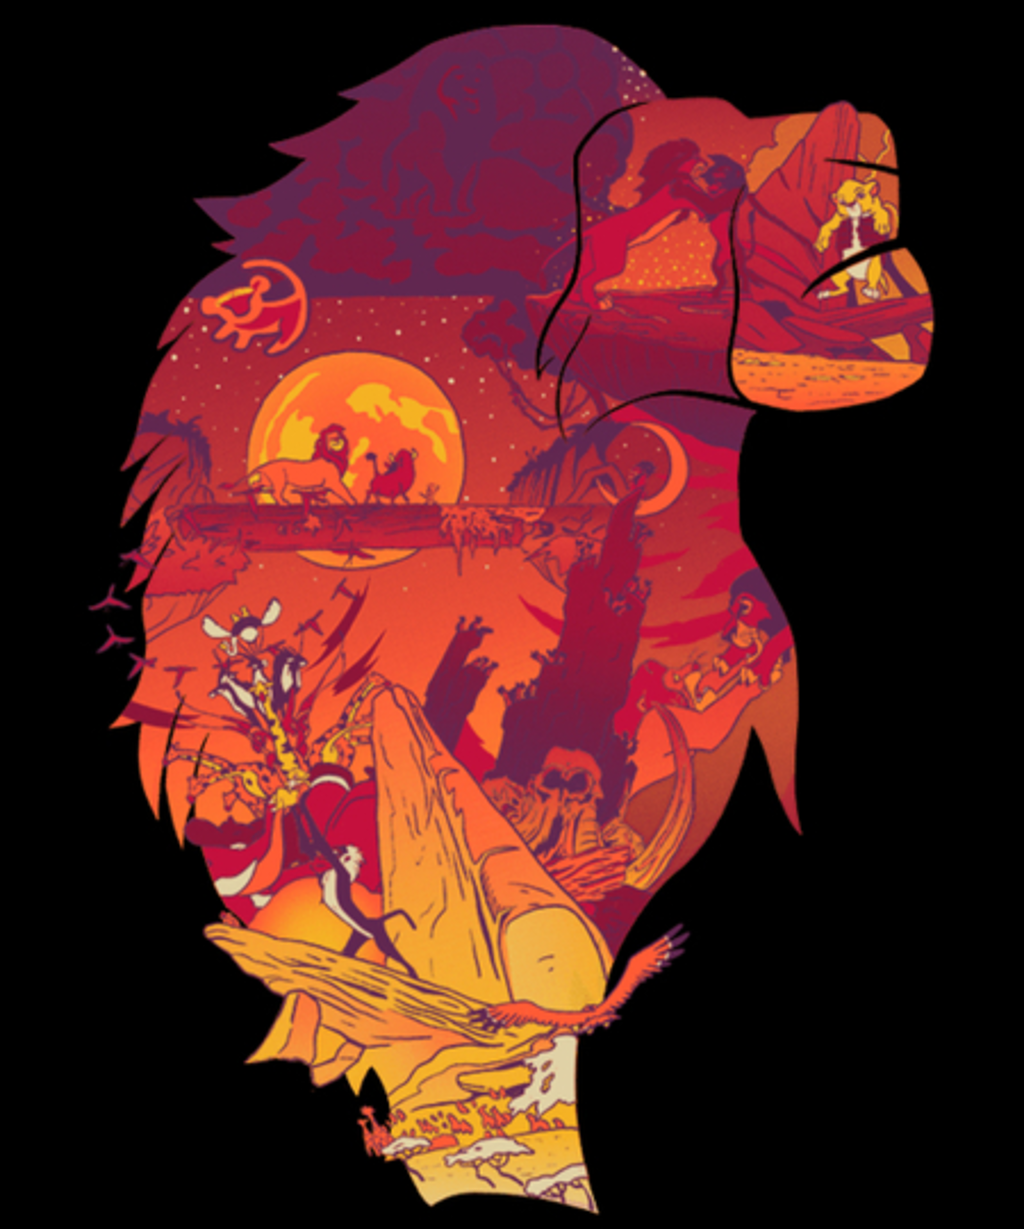 Qwertee: Remember who you are